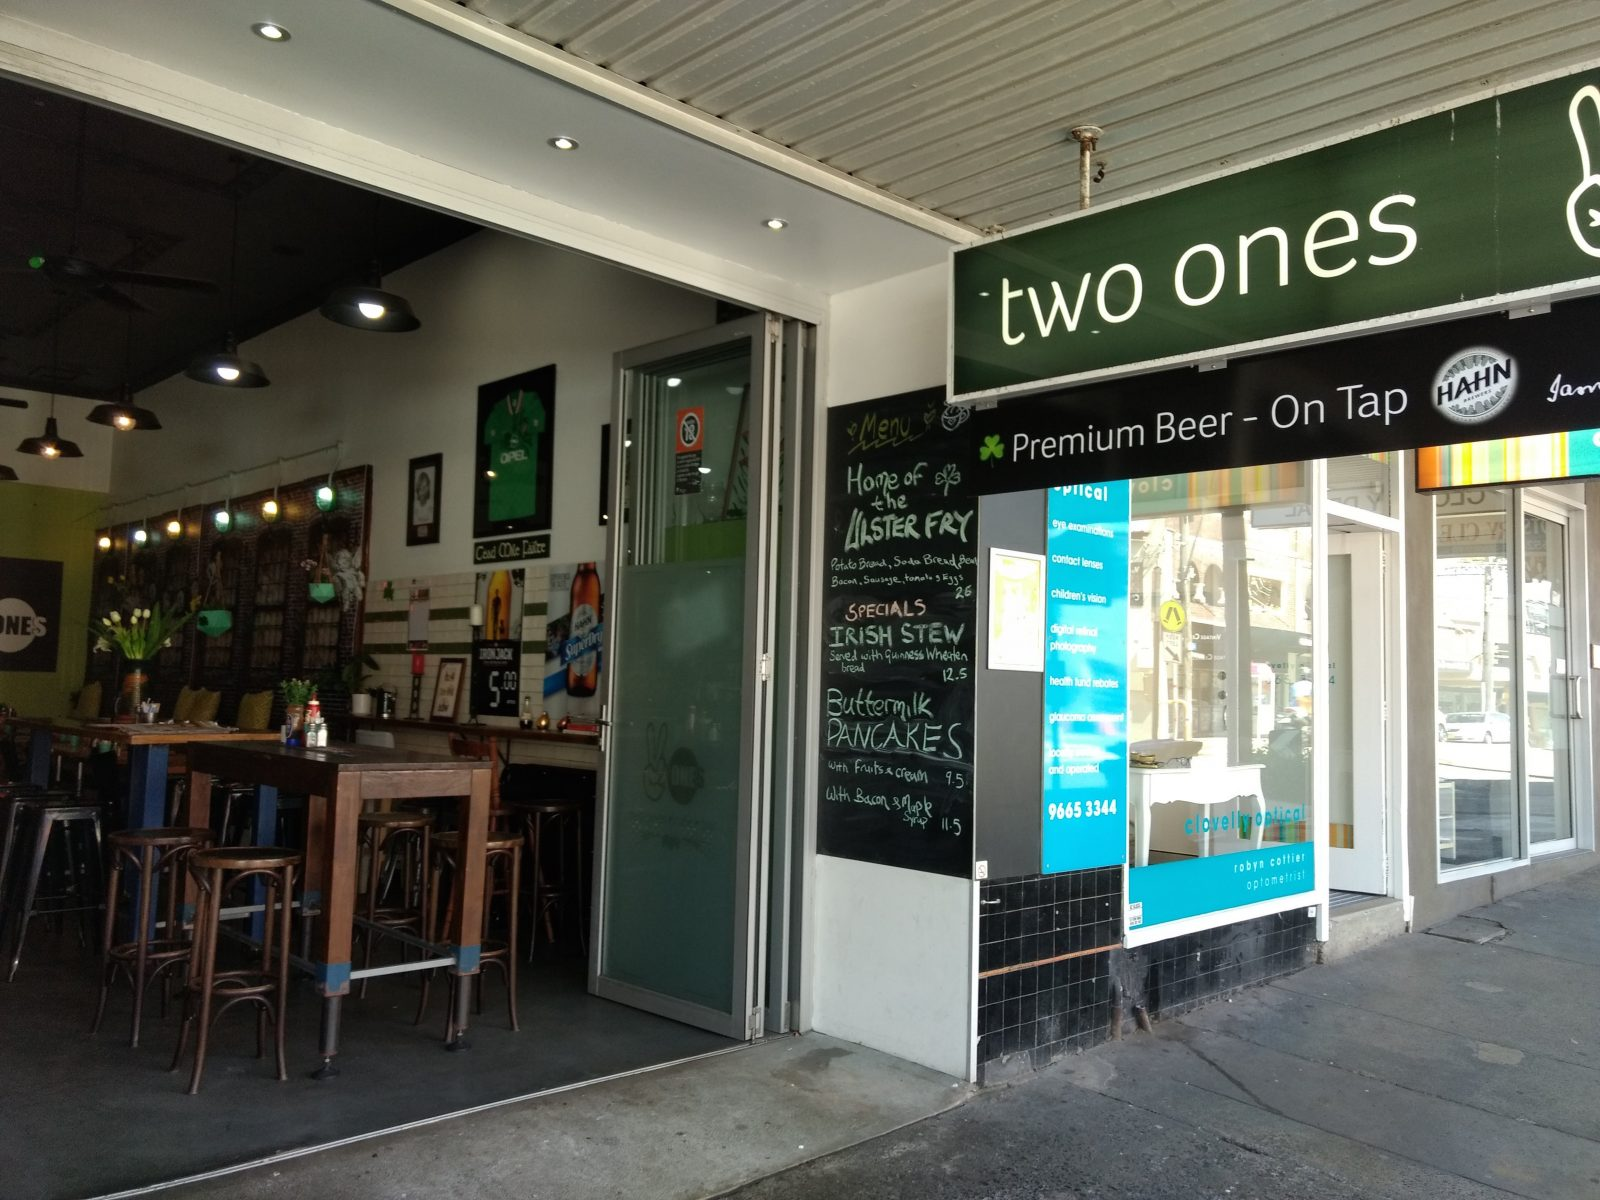 Two Ones Cafe & Bar